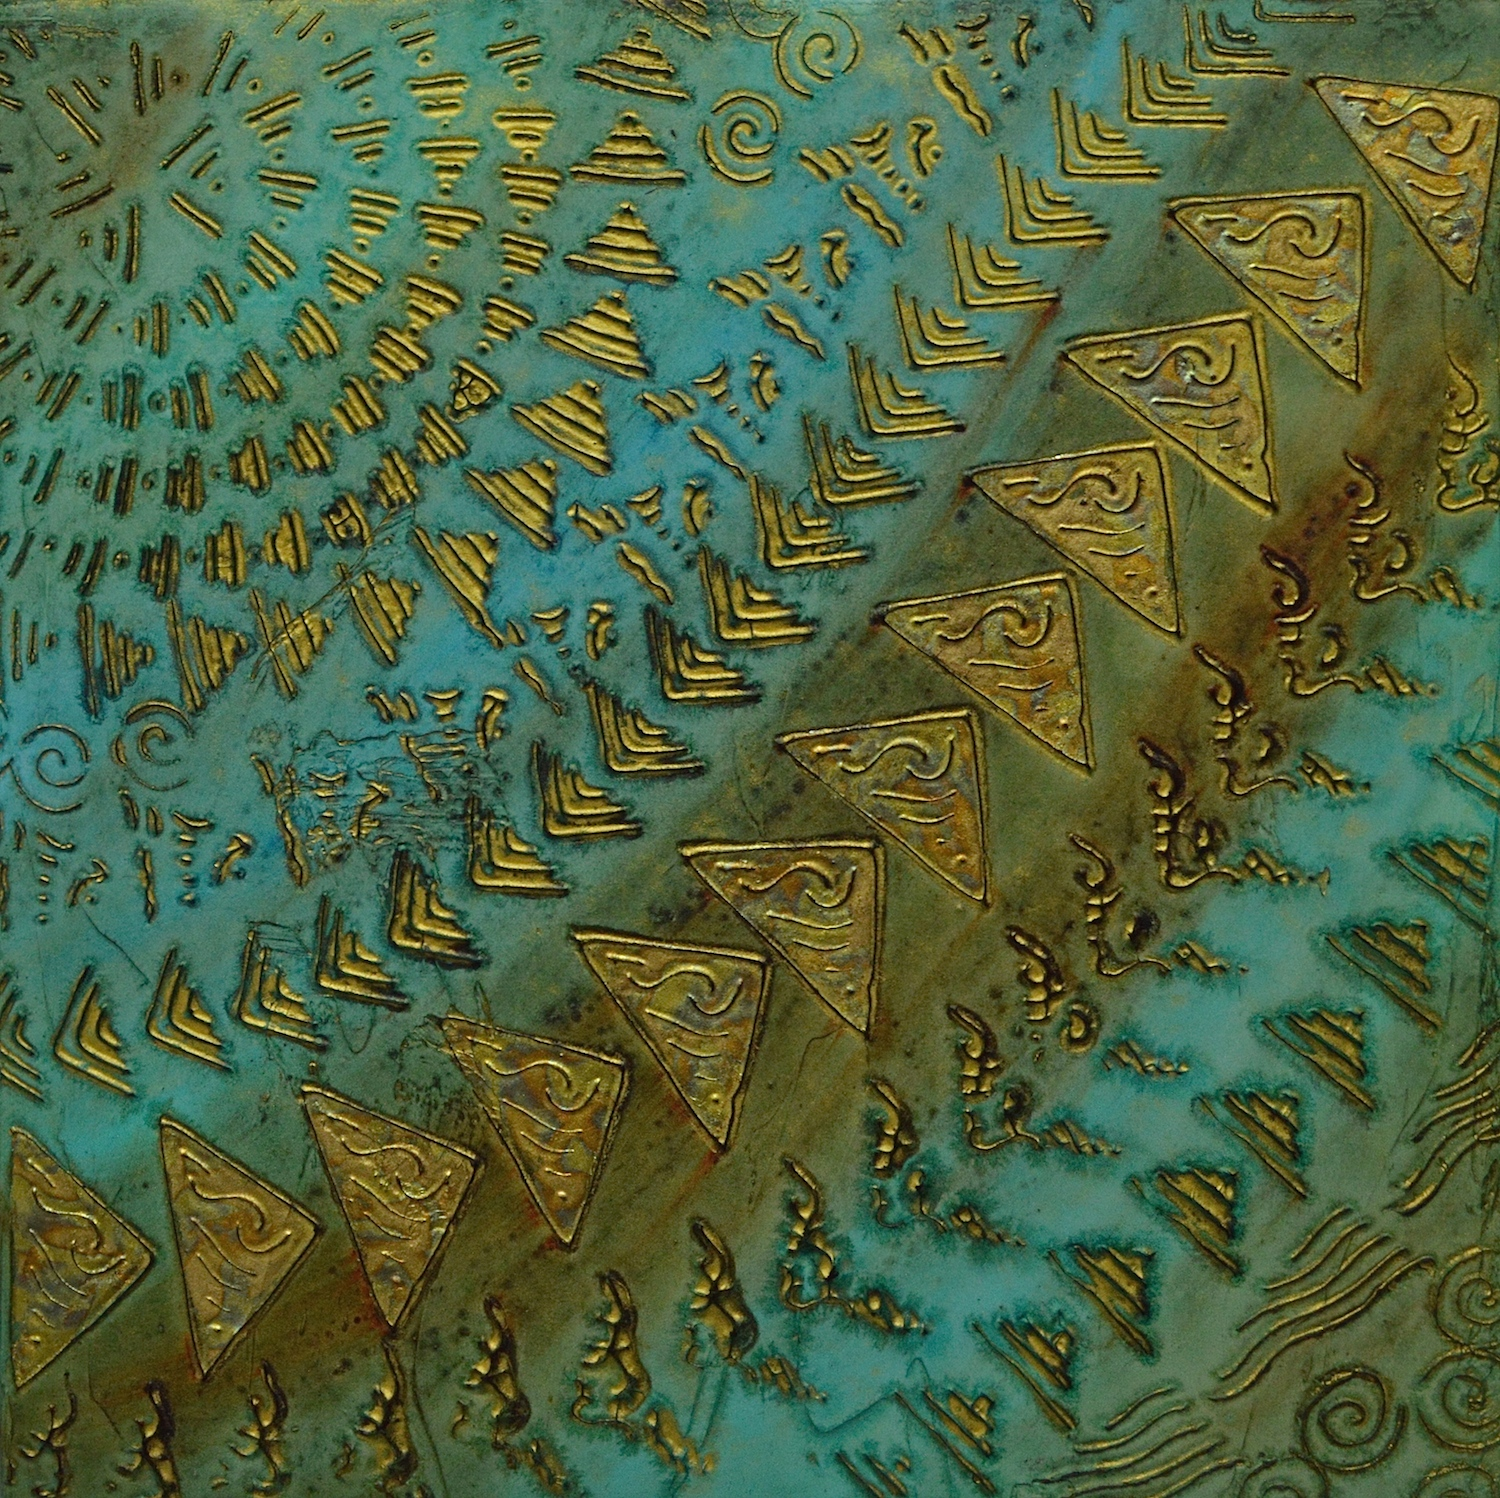 "A Four Part Brief on Coral Reef # 1 of 4 @ 12"" x 12' x 2"" Acrylic, oil & gold leaf on archival board"